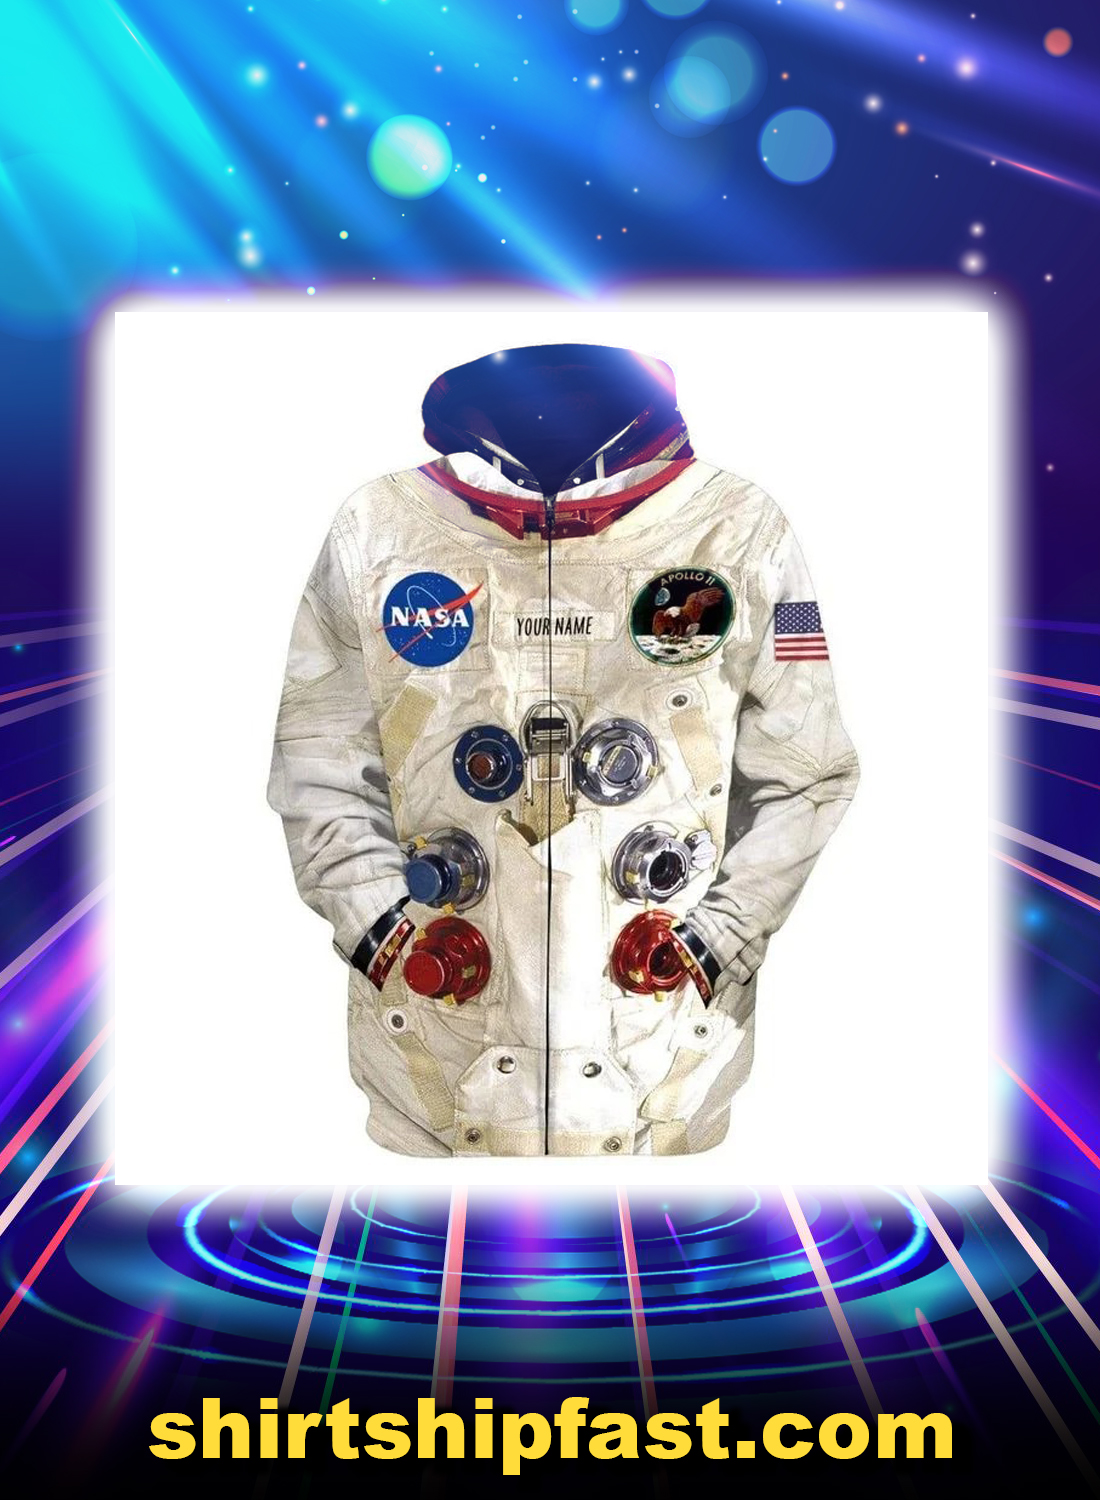 Neil armstrong space suit personalized custom name 3d zip hoodie